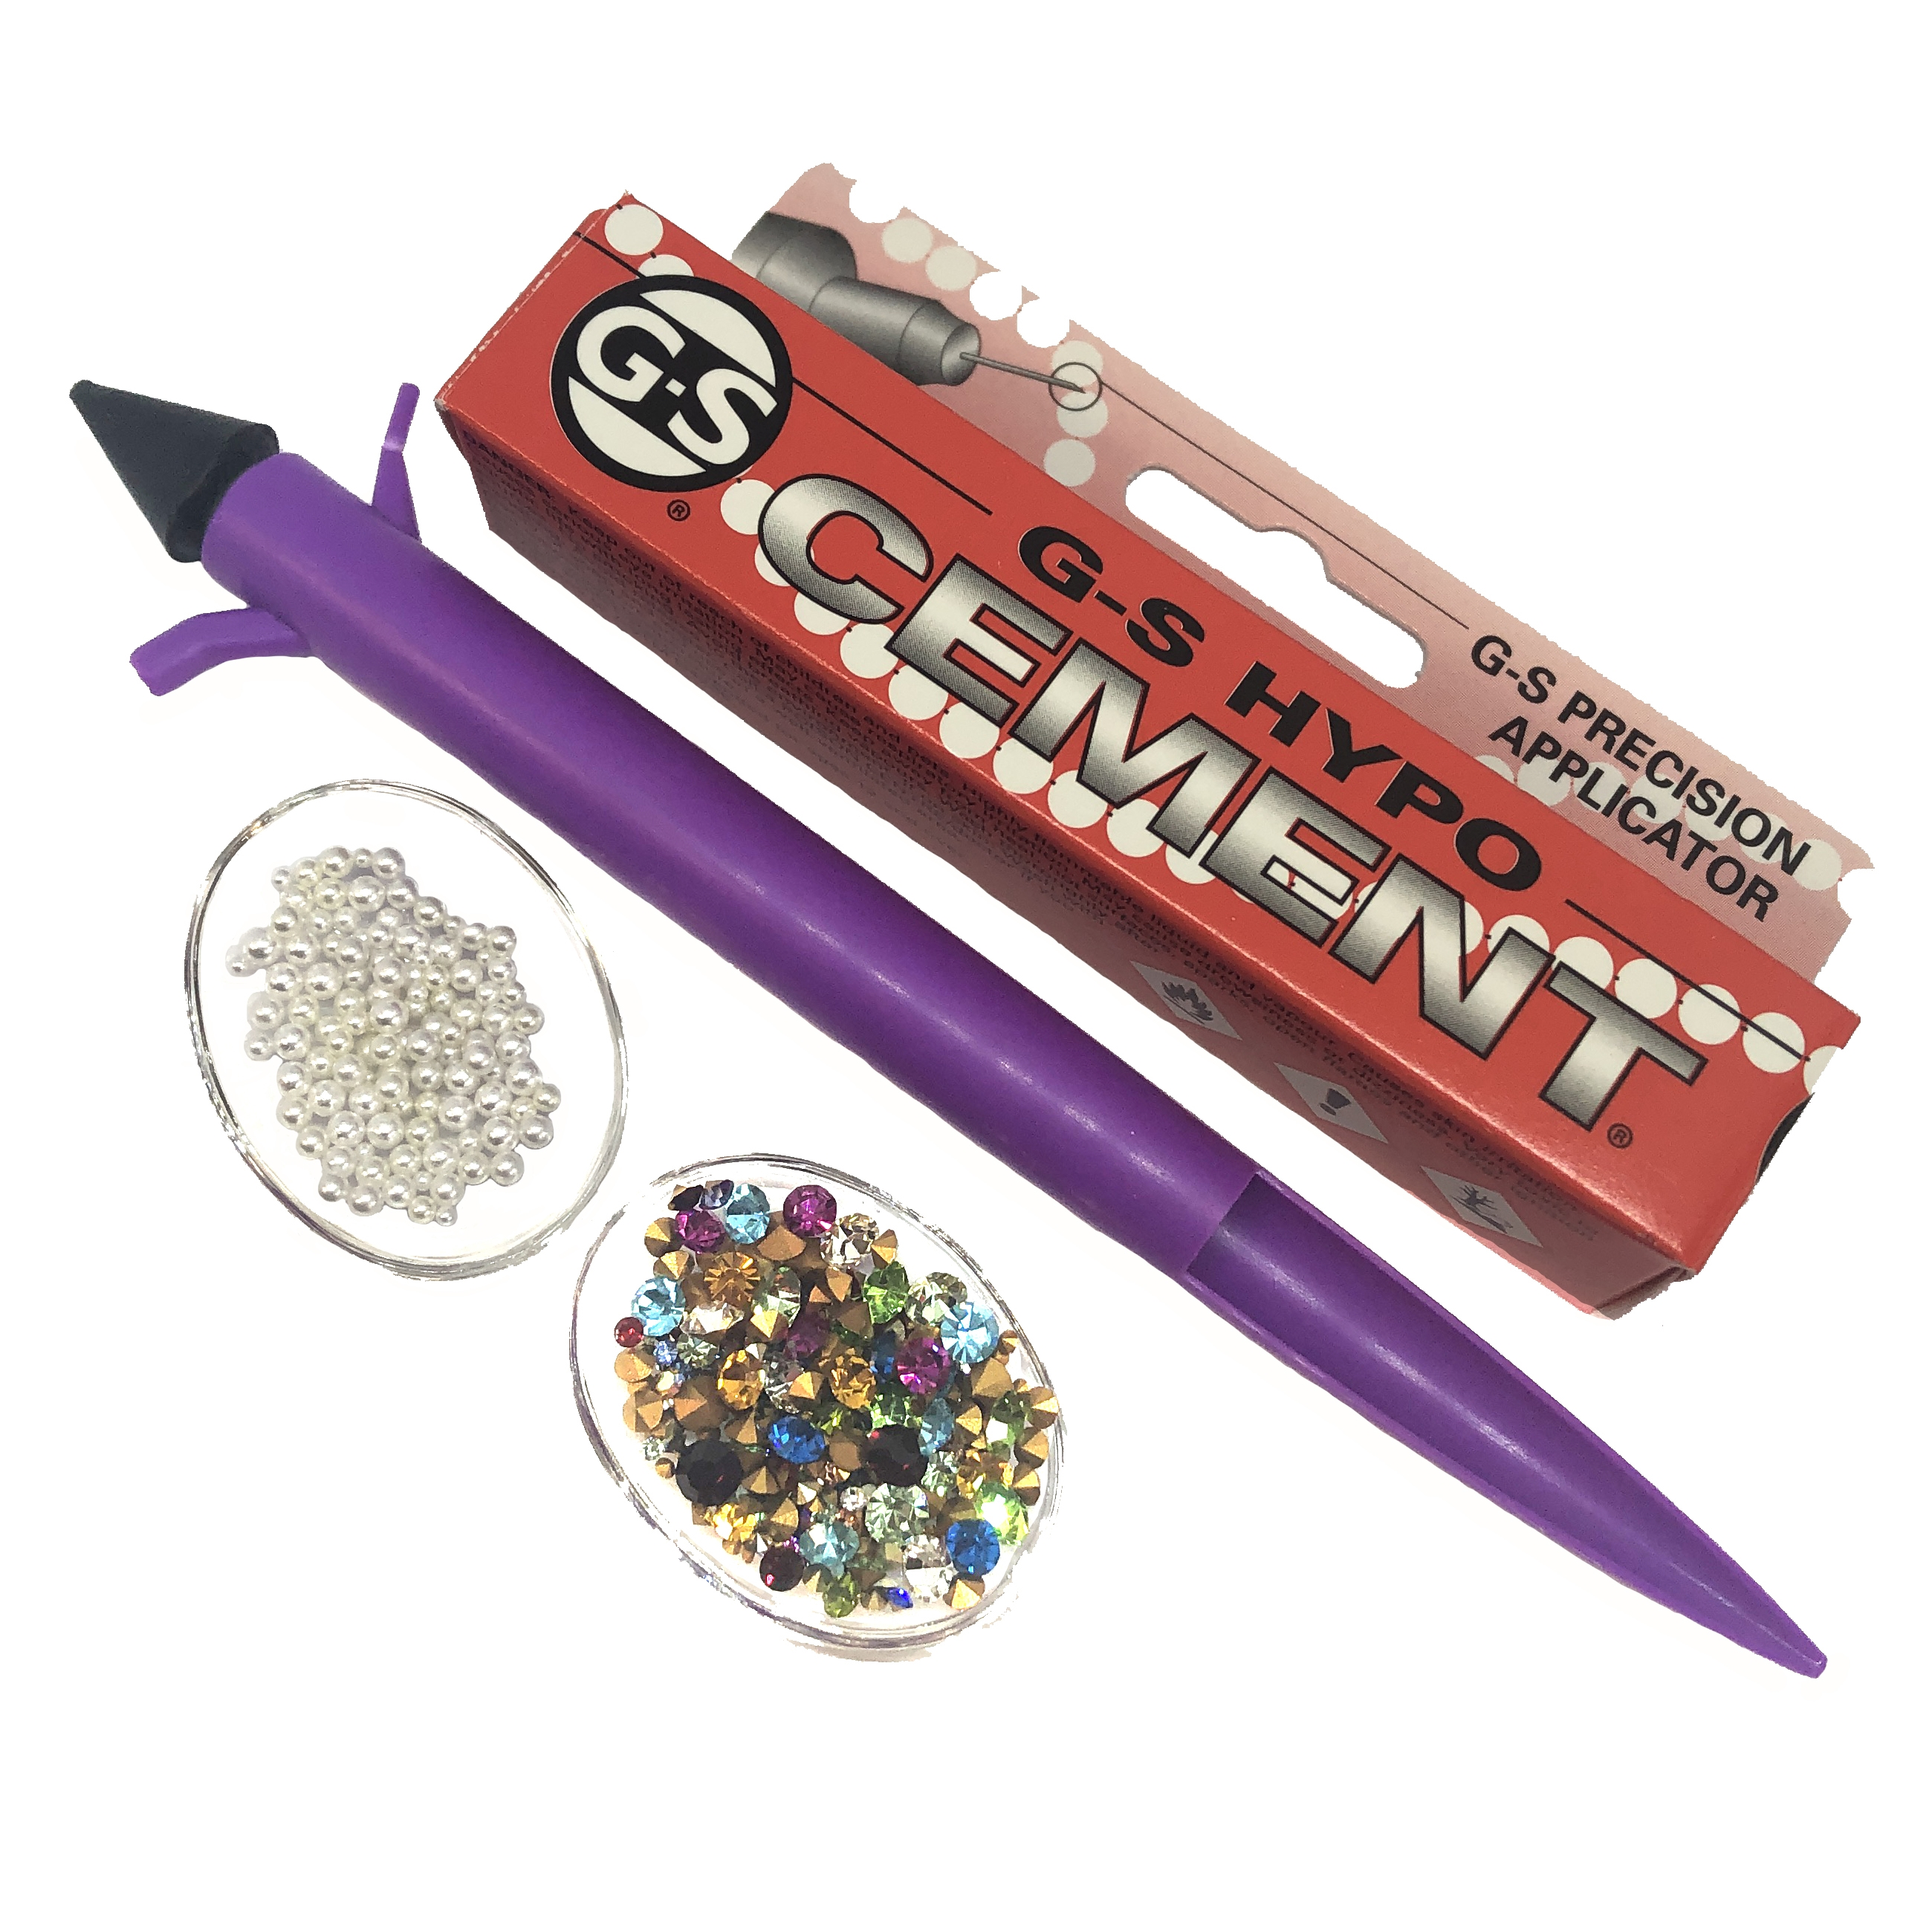 pick up artist kit, chatons, pearls, 08939, embellishments, accents, pick up tool, assorted sizes, multi-color, Bsue Boutiques, jewelry supplies, jewelry making, kit